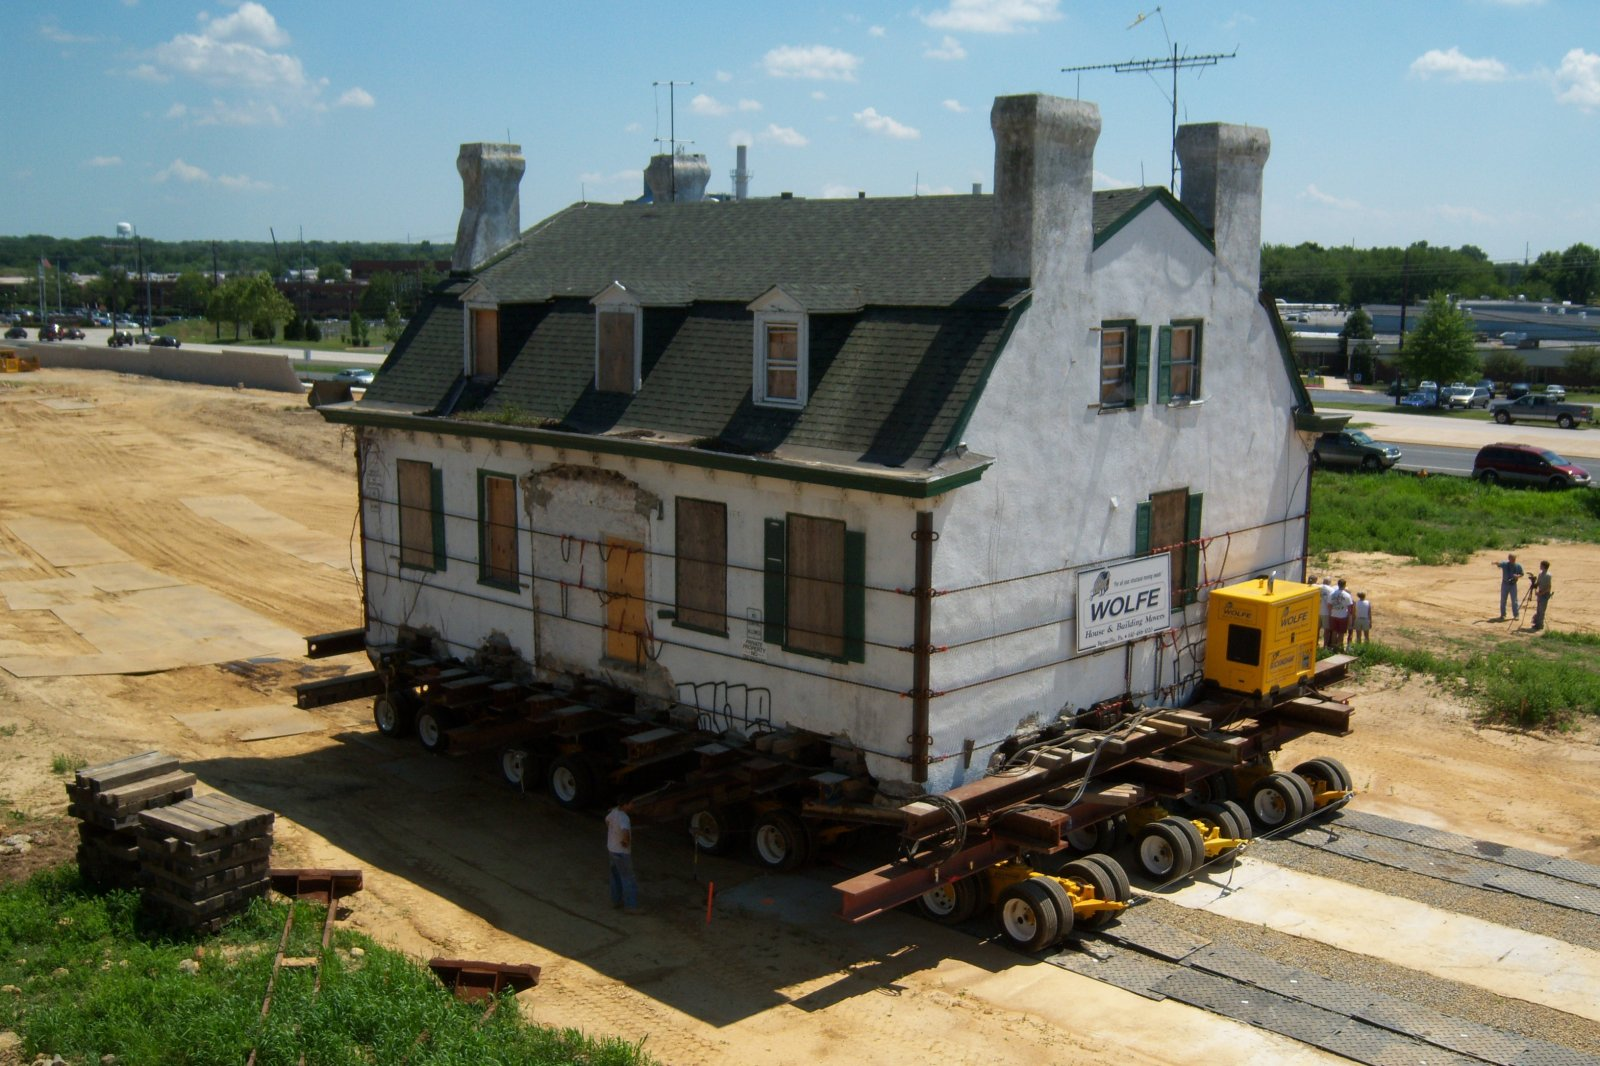 Wolfe House & Building Movers uses the Buckingham Power Dolly System to move a house in Newark, Delaware